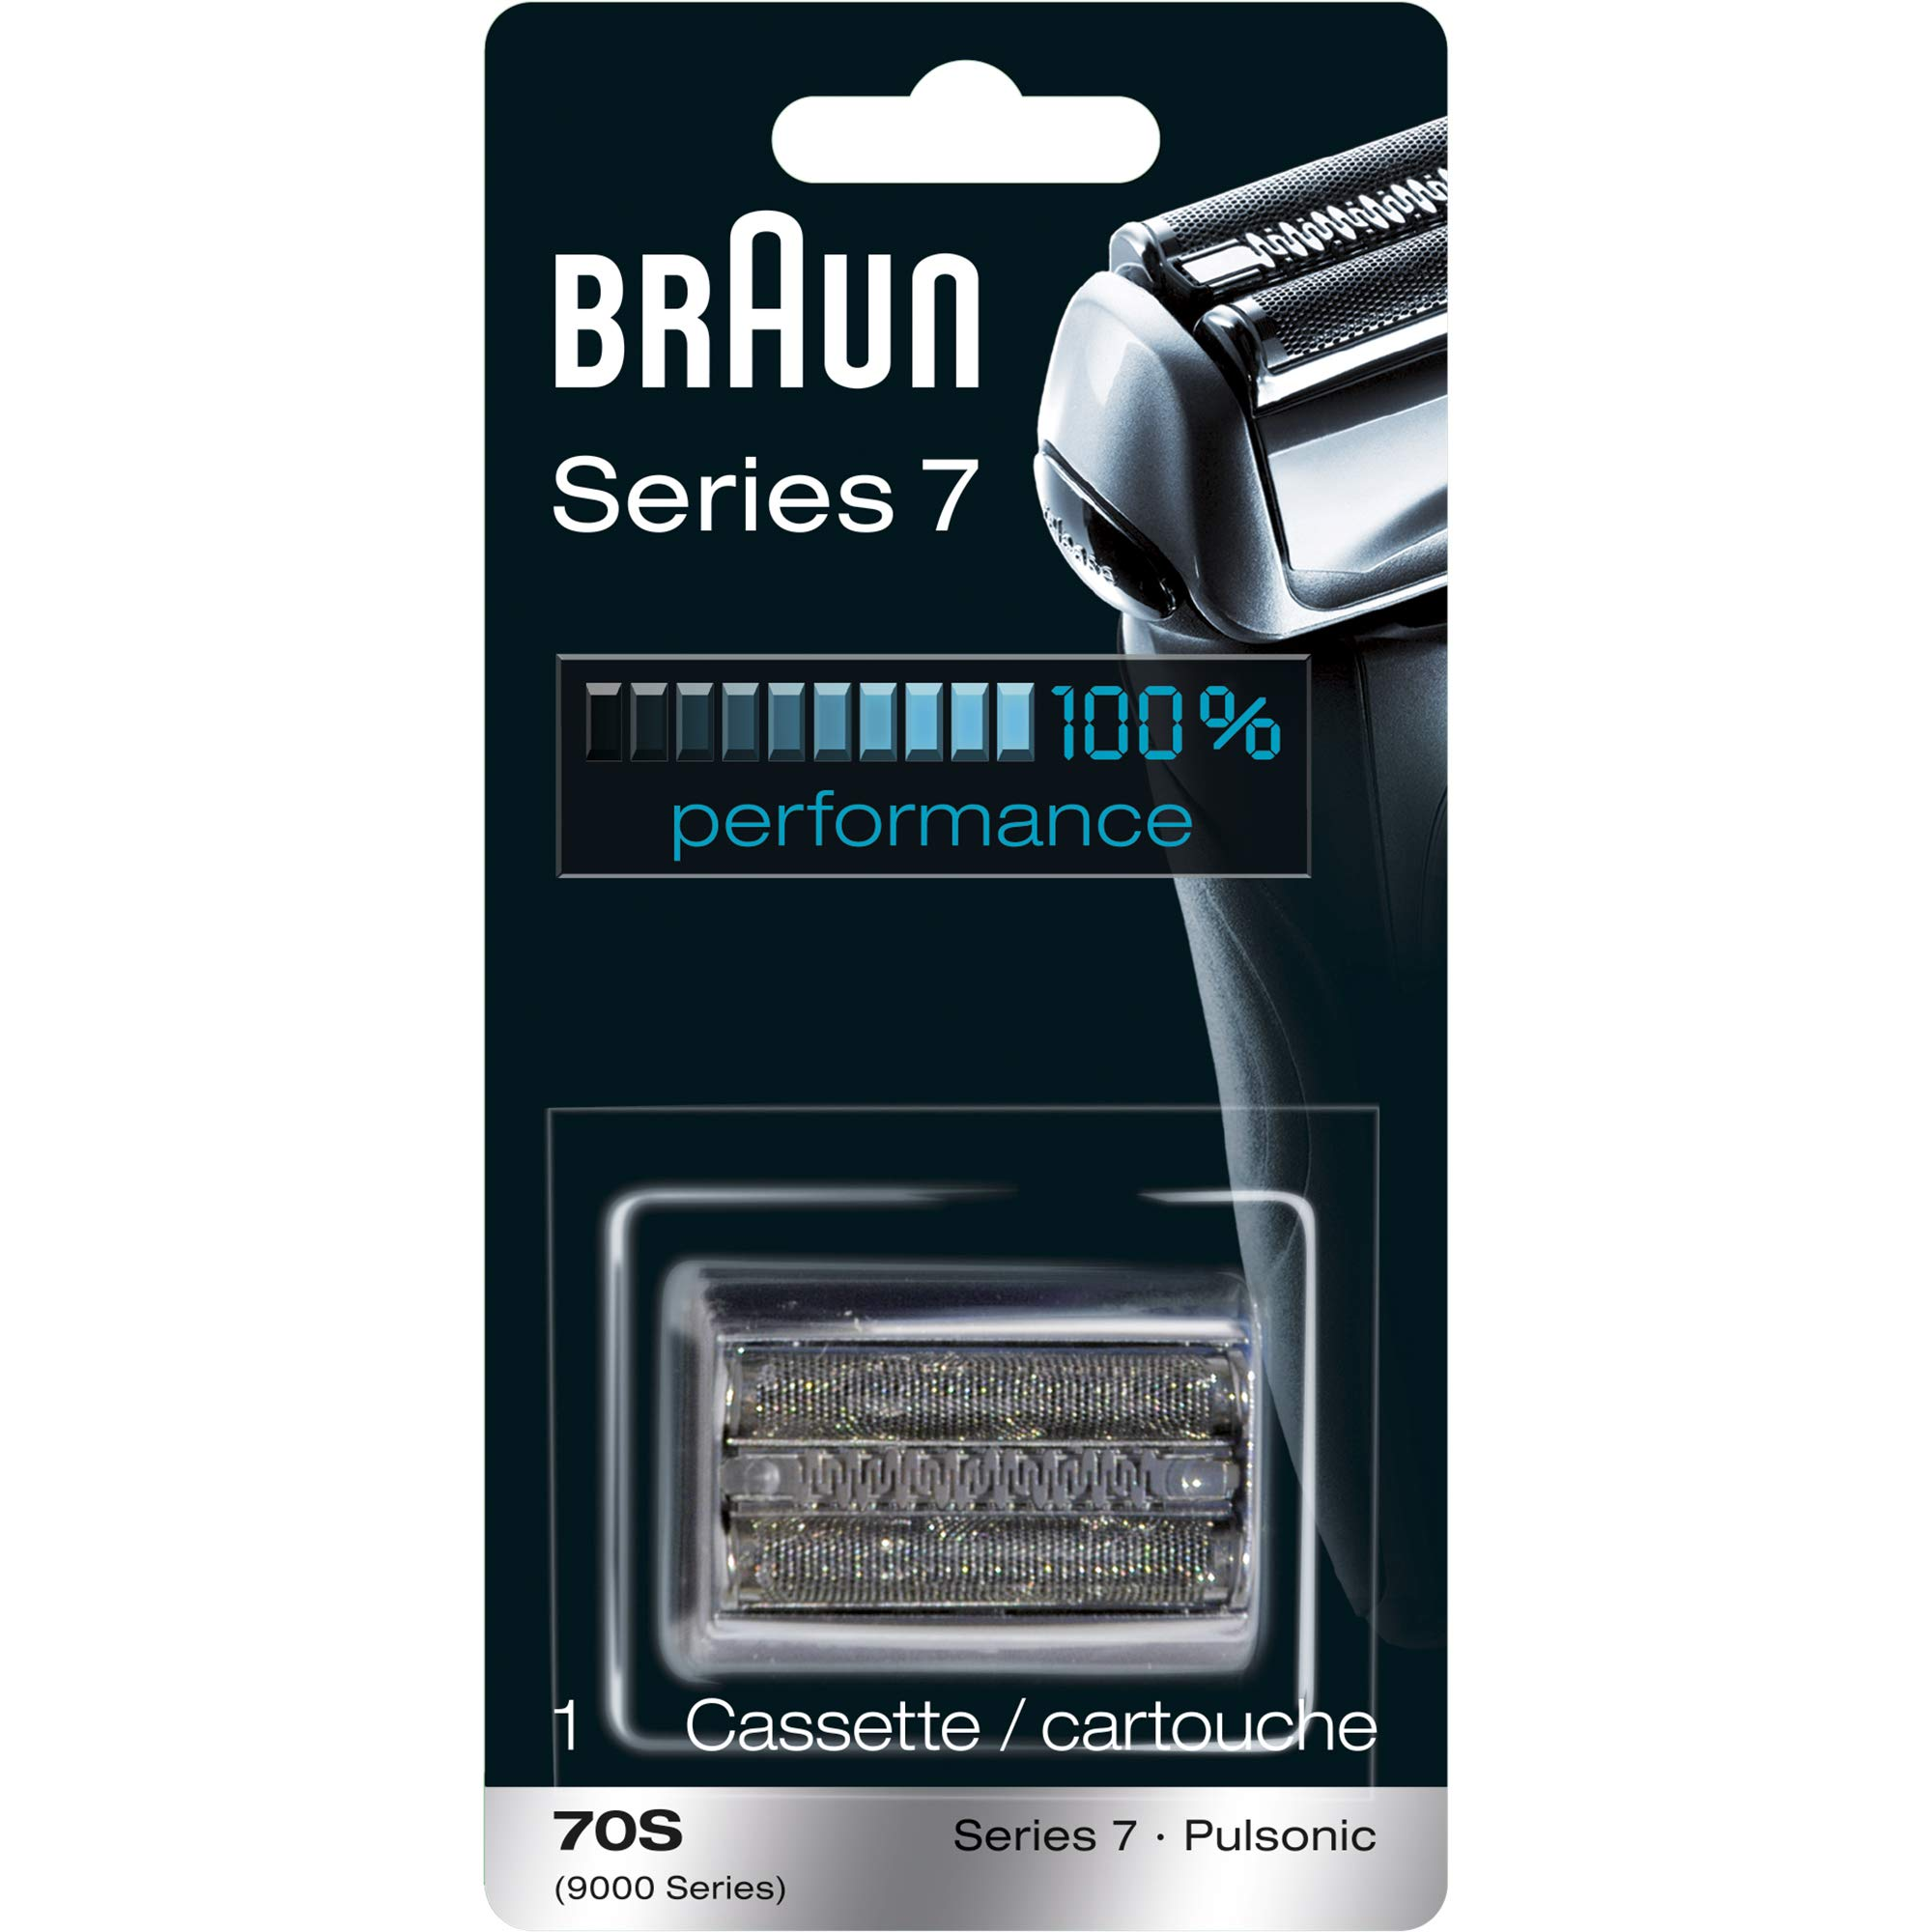 Braun Series 7 Electric Shaver Replacement Head - 70S -Compatible with Electric Razors 790cc, 760cc, 7850cc, 7865cc, 7880cc, 7893s, 740s